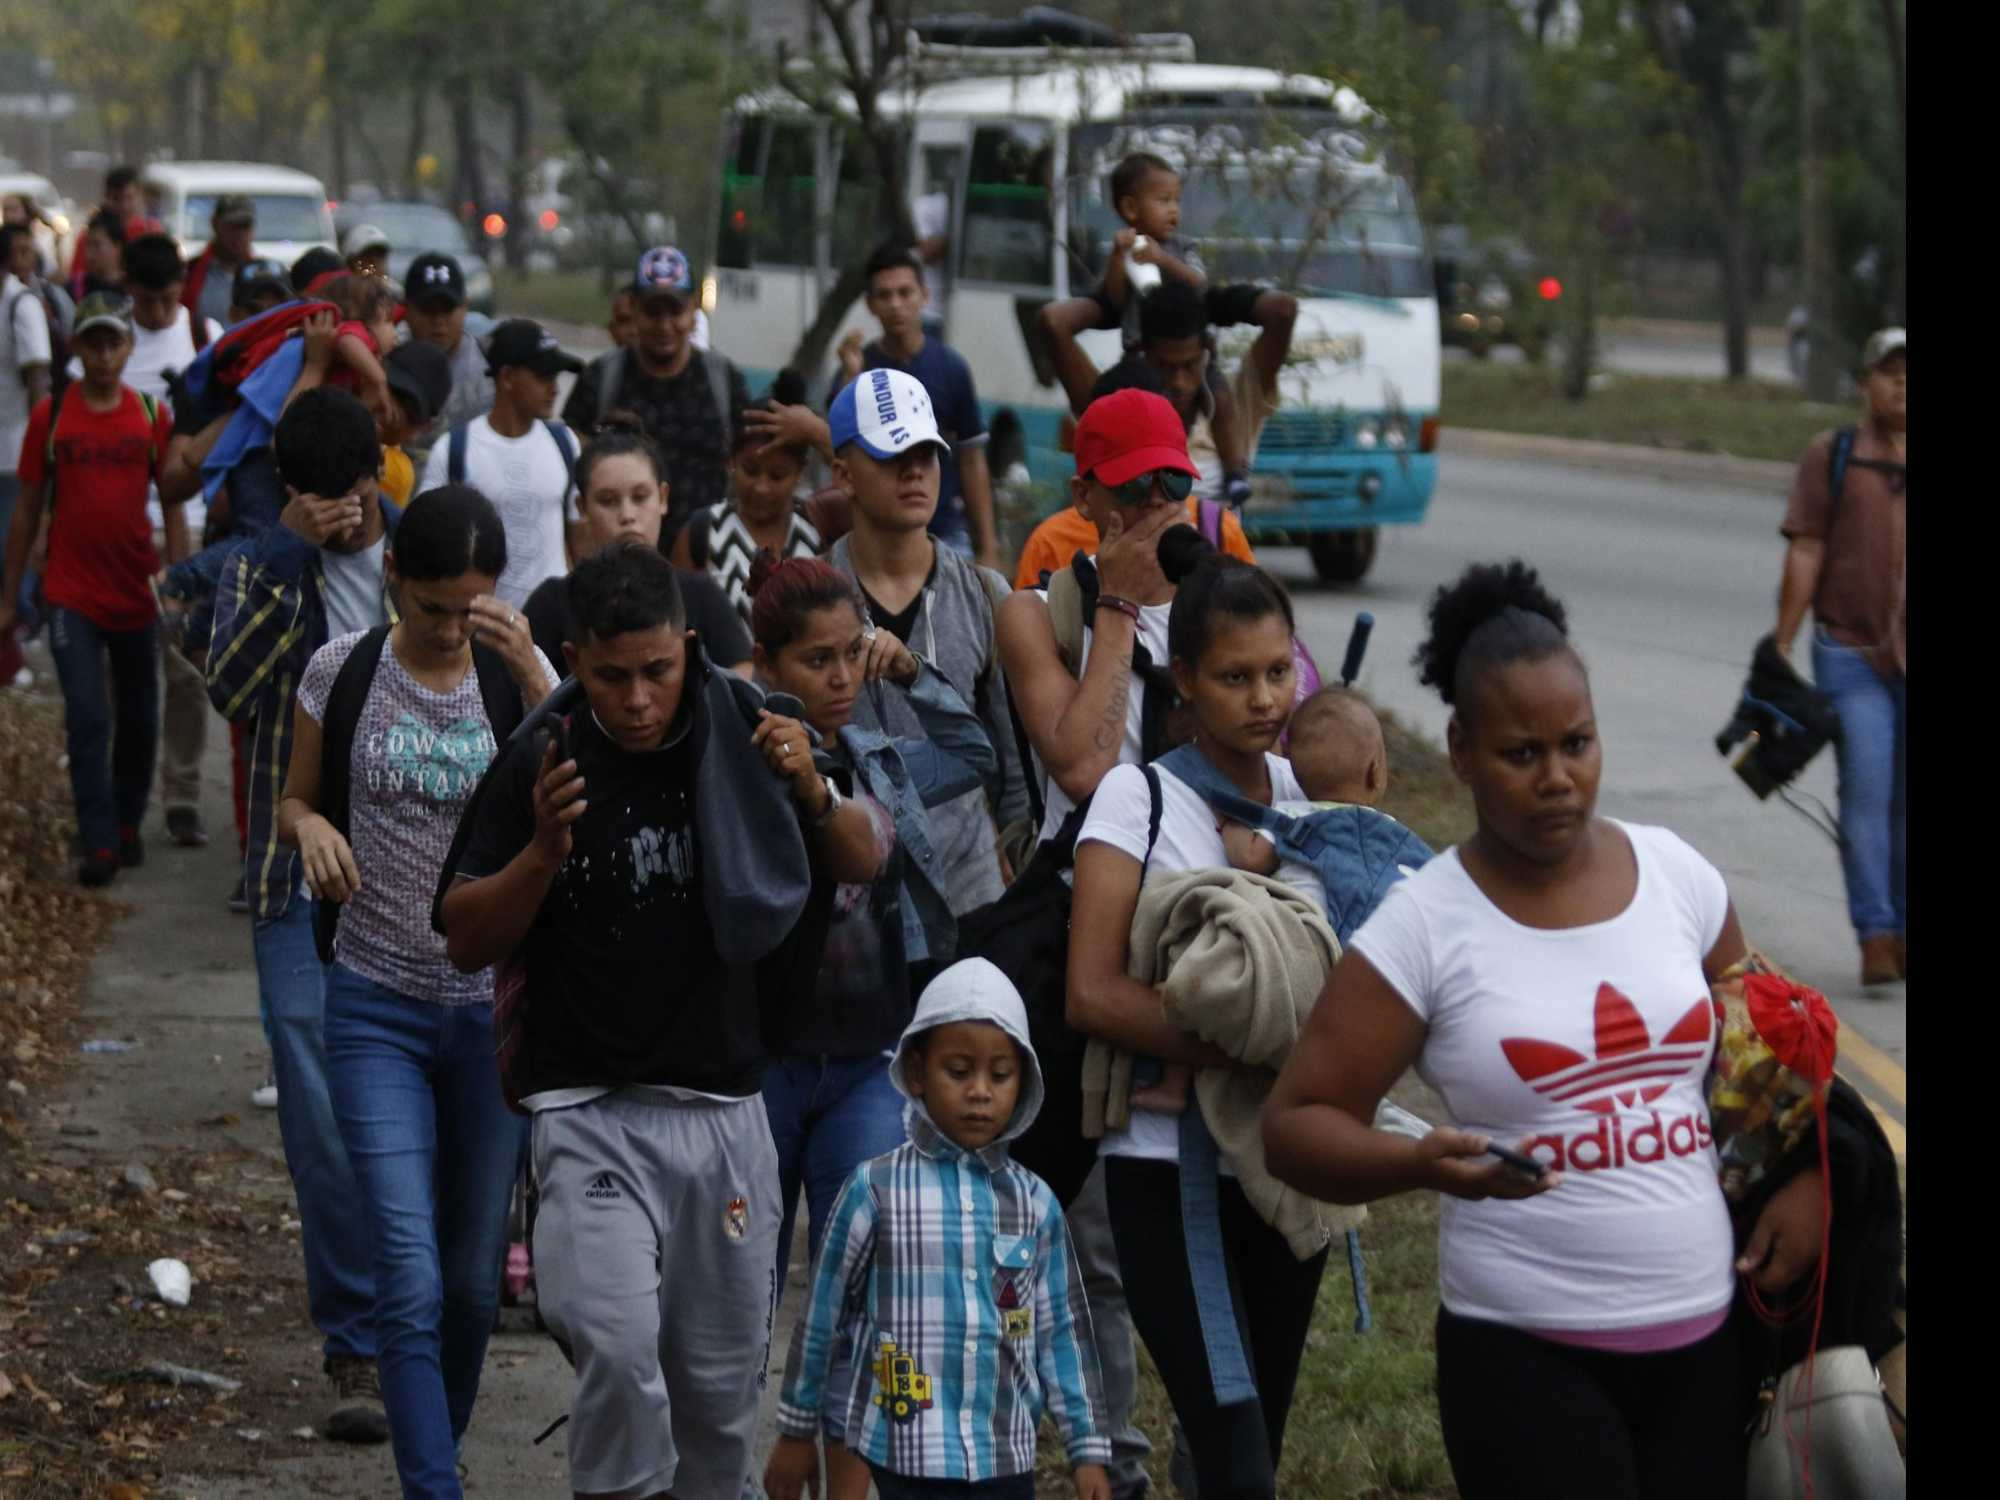 Violence, Poverty Reign in Honduran City Where Caravans Form